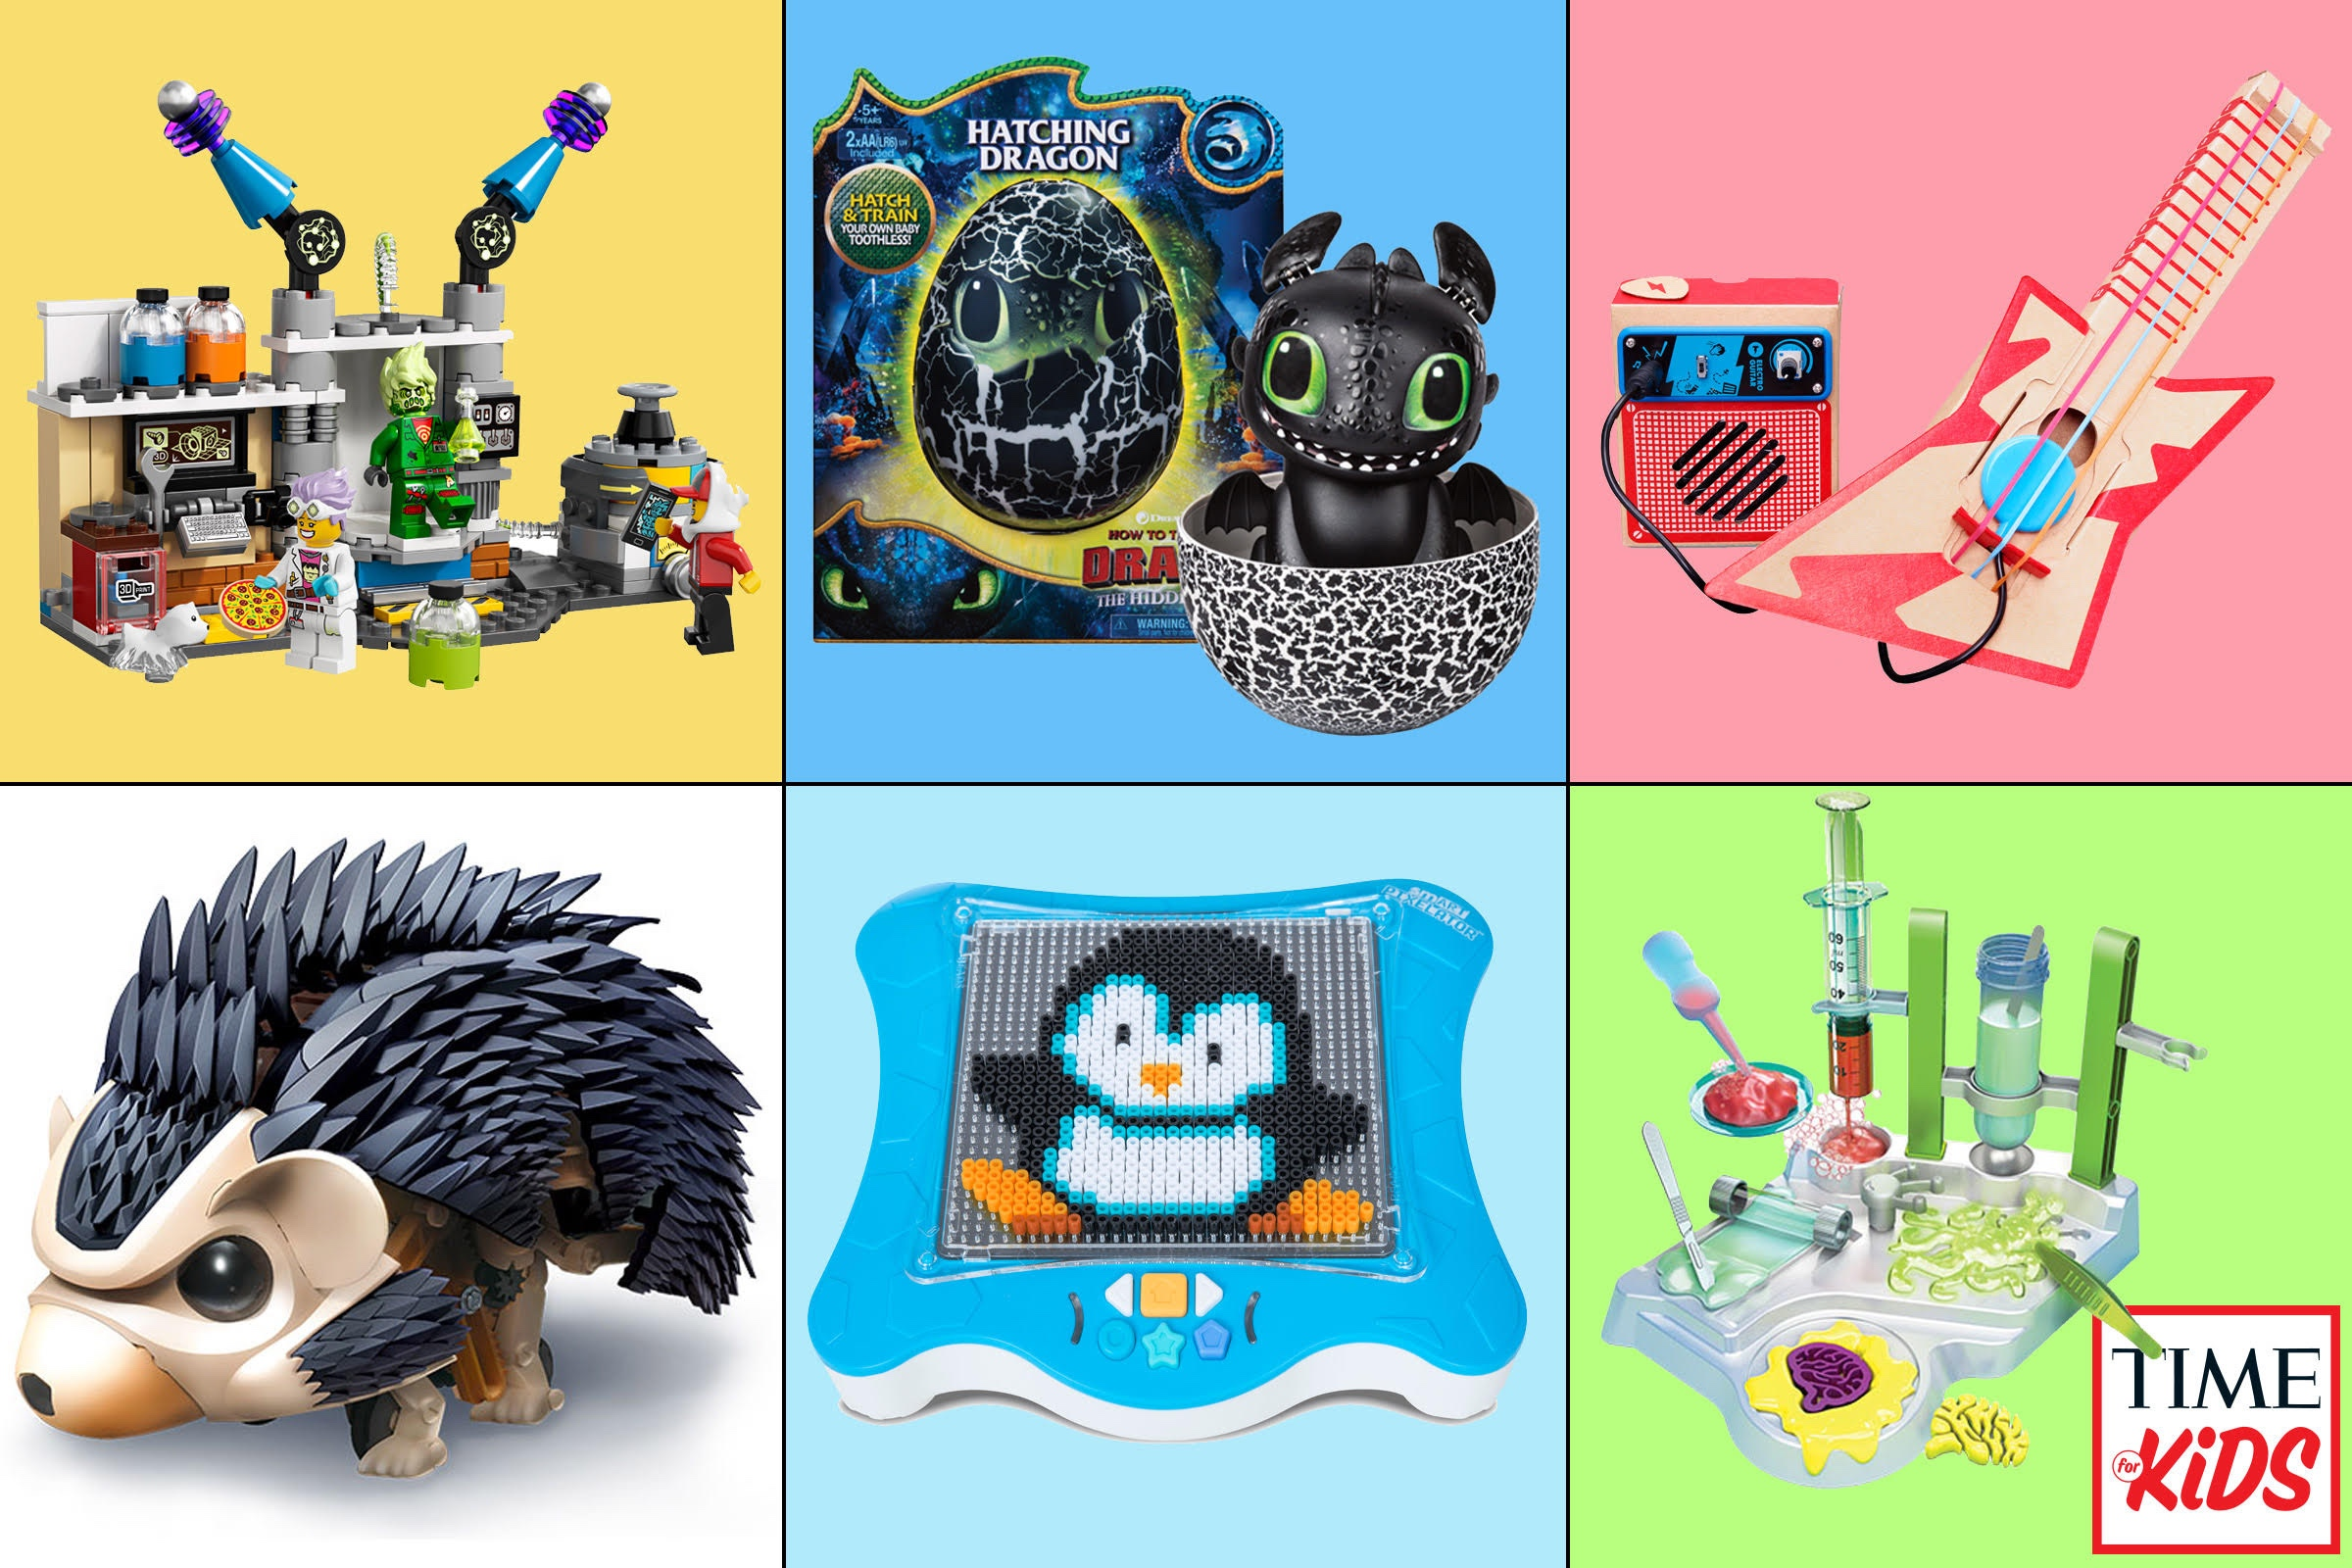 Design Your Own Robot Art Project